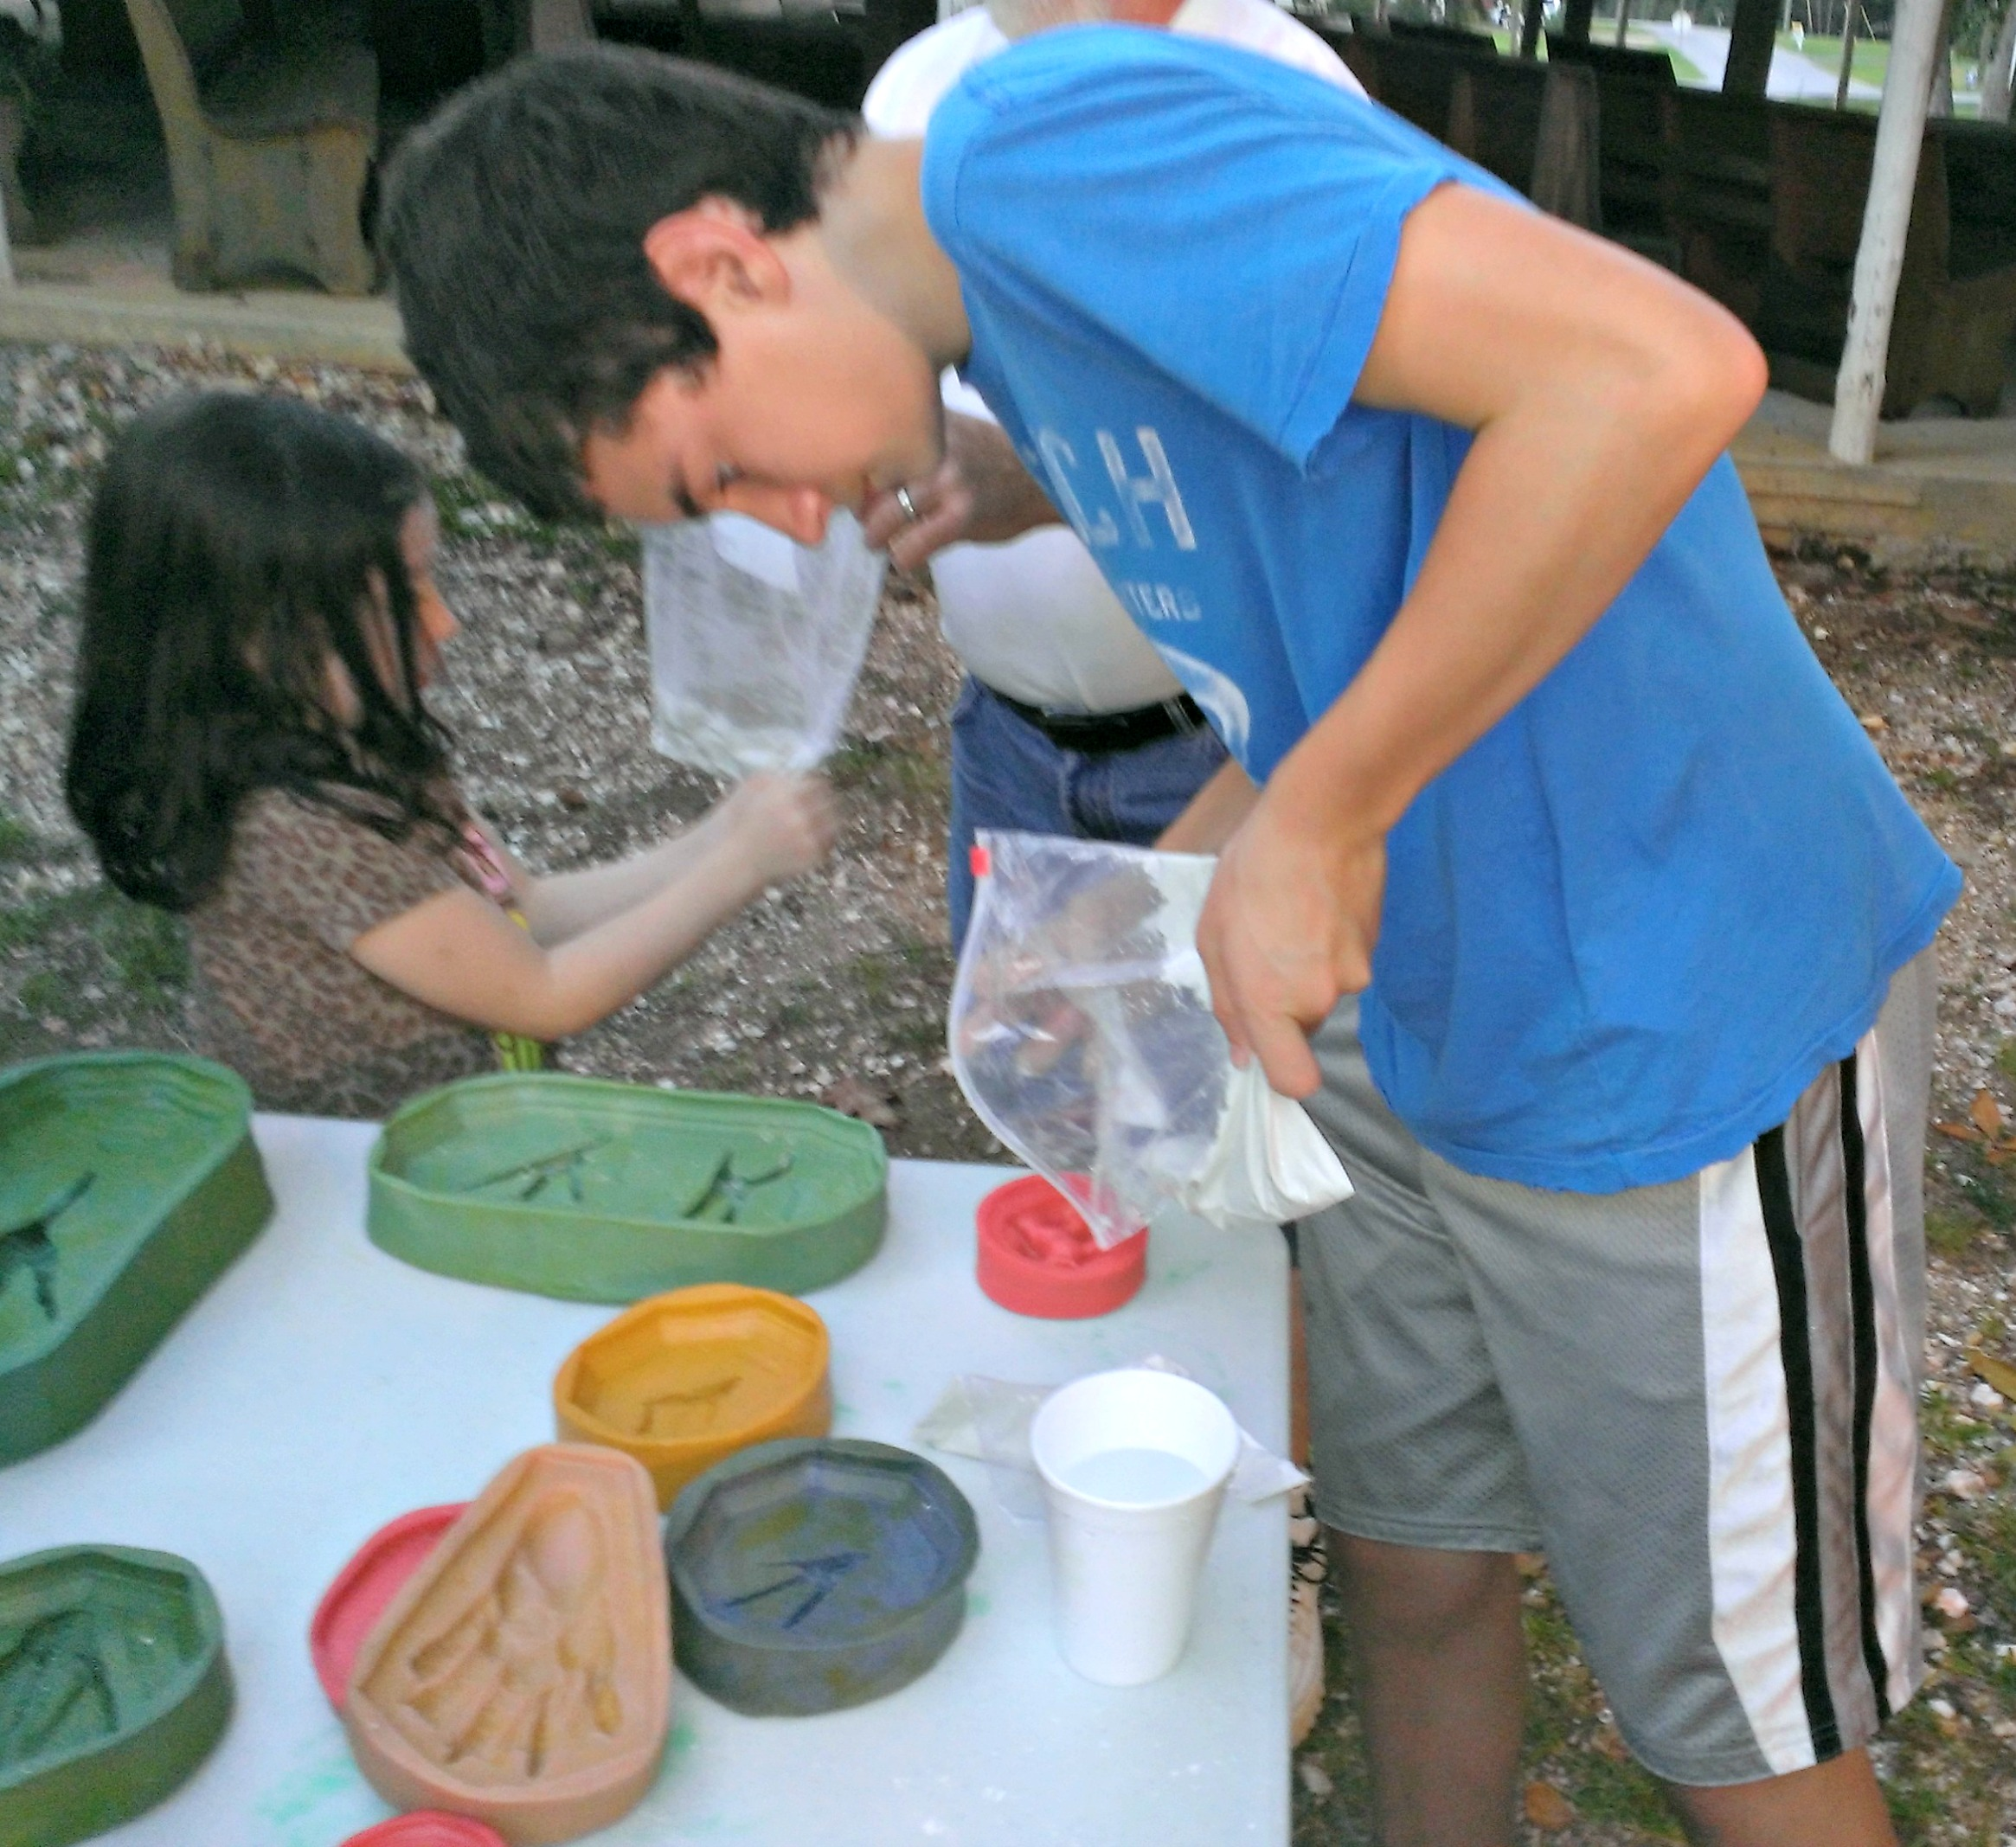 4-H male youth pouring plaster into wildlife track mold